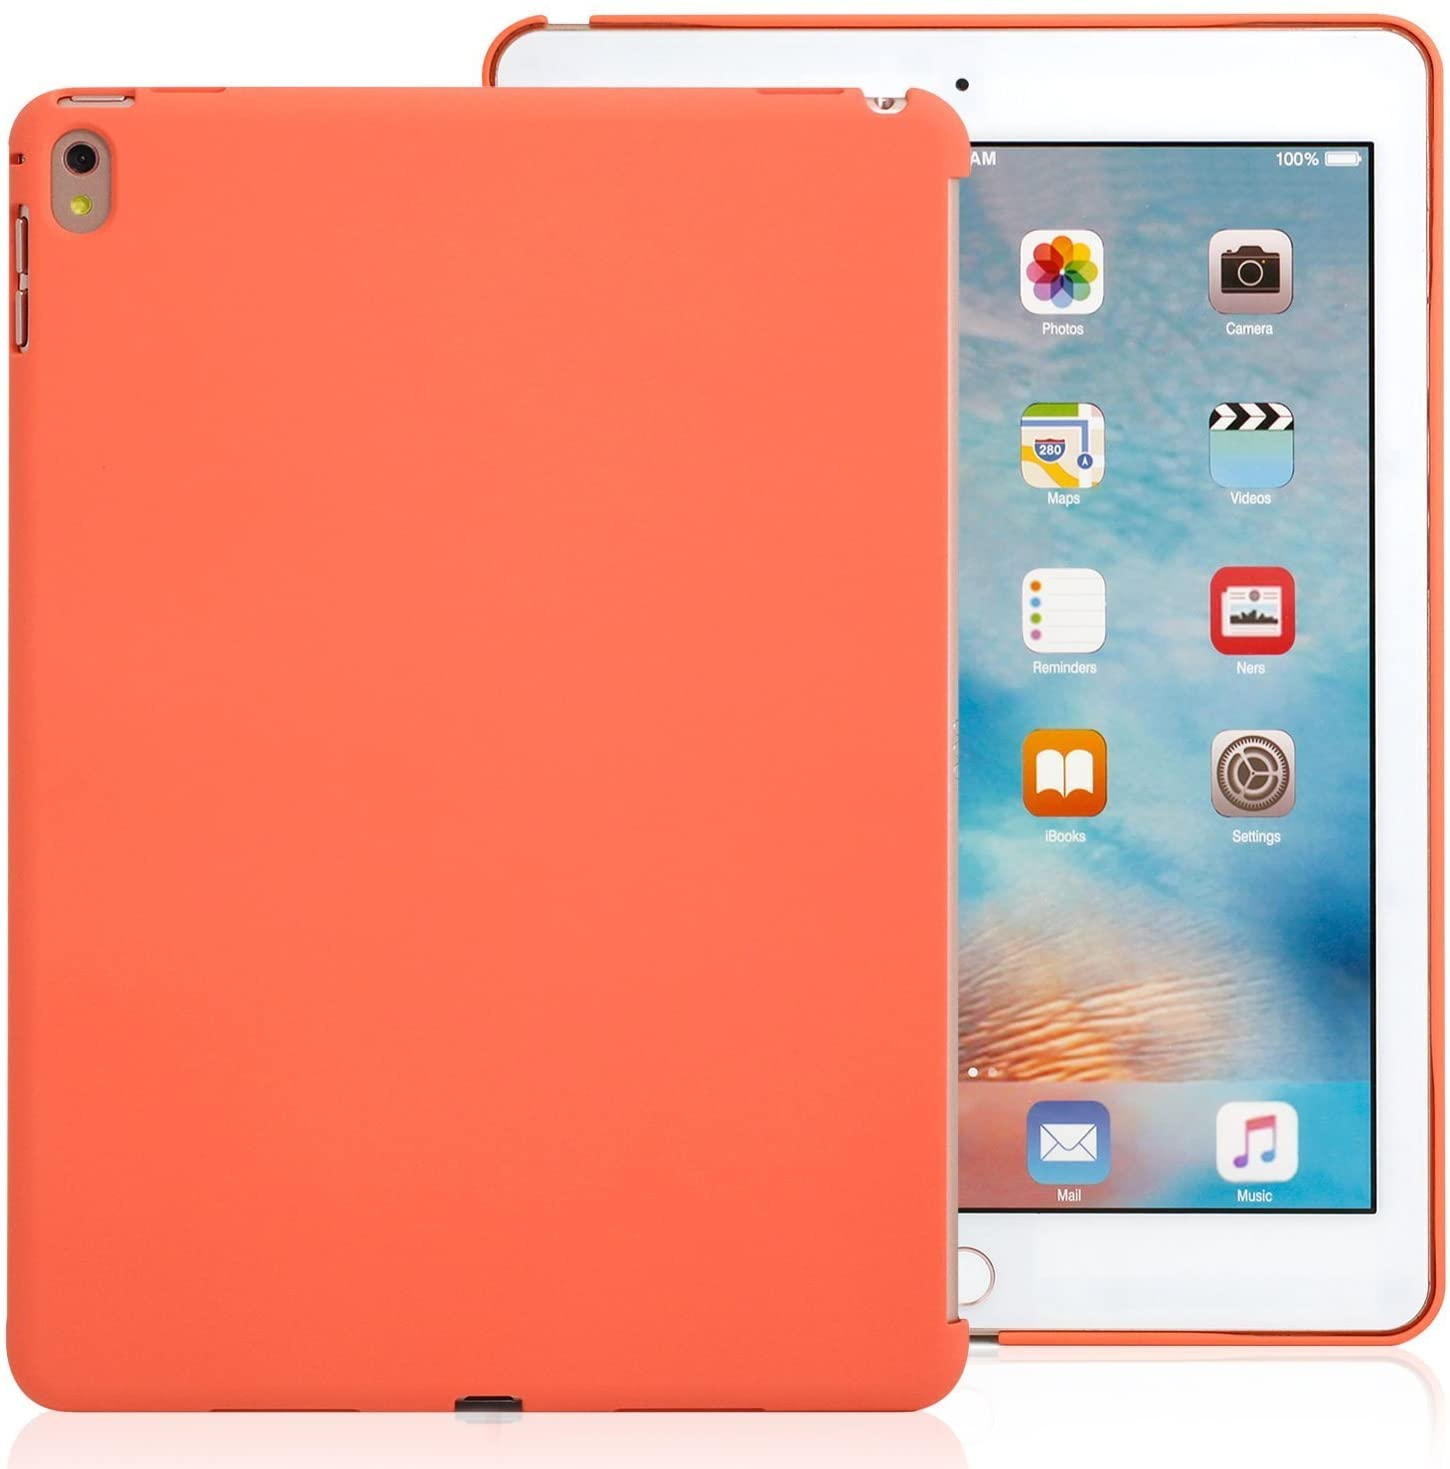 iPad Pro 9.7 Inch Apricot  Back Case - Companion Cover - Perfect match for smart keyboard.